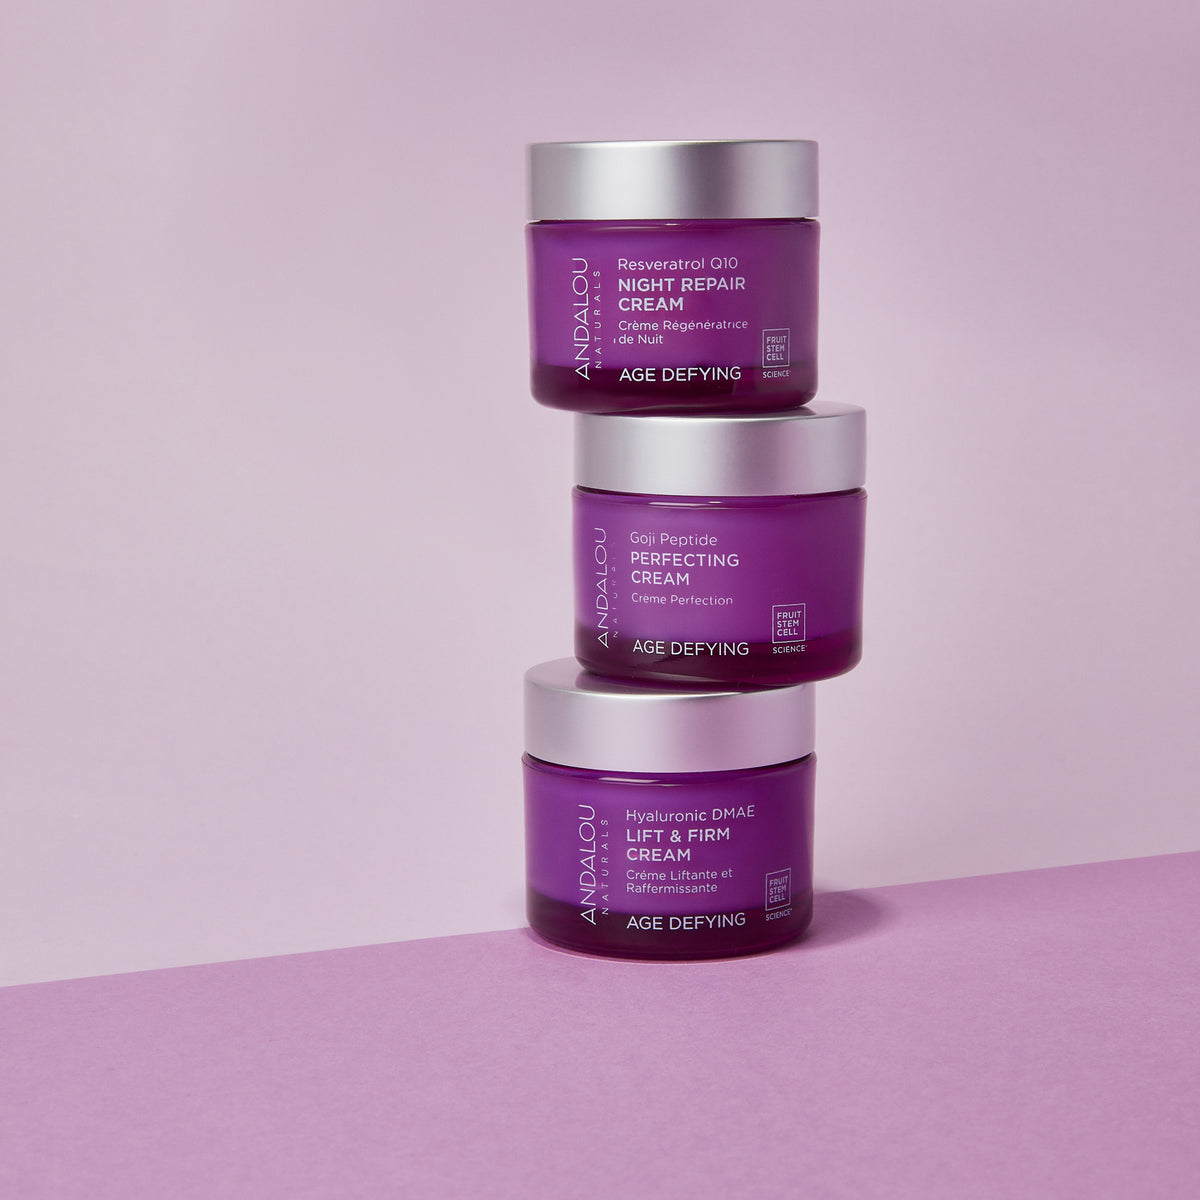 Age Defying Resveratrol Q10 Night Repair Cream